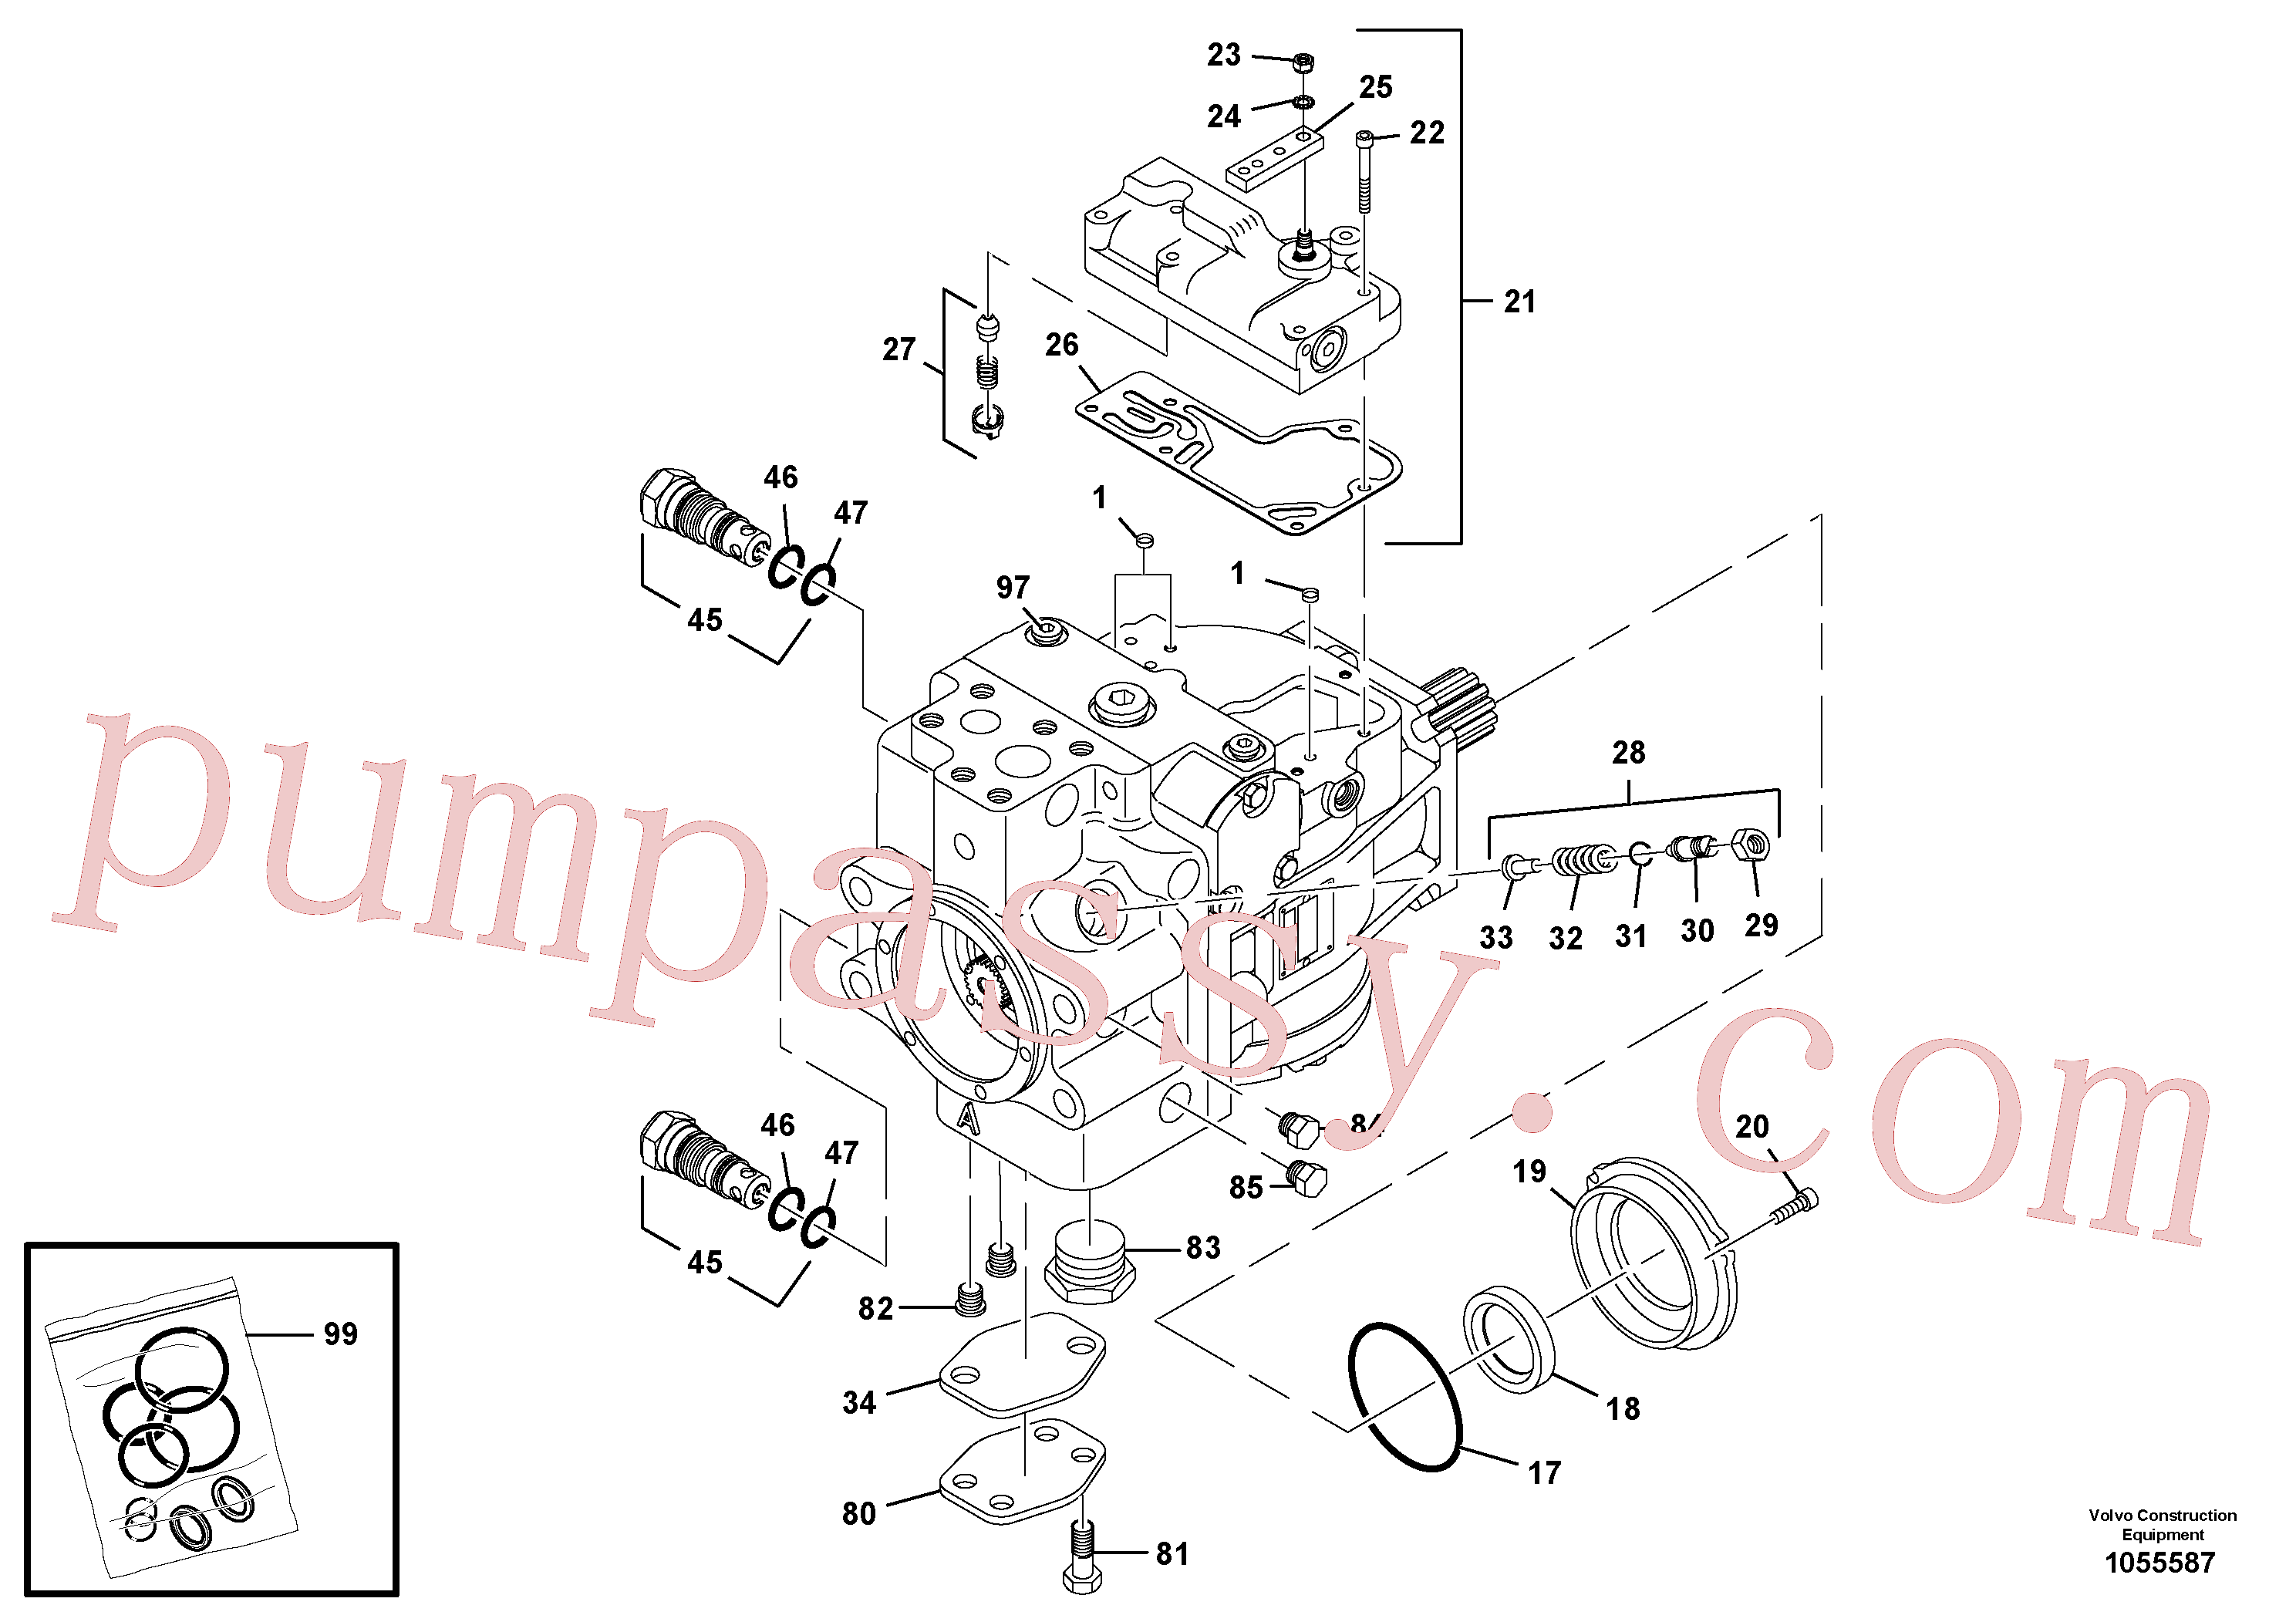 RM59360735 for Volvo Propulsion Pump(1055587 assembly)